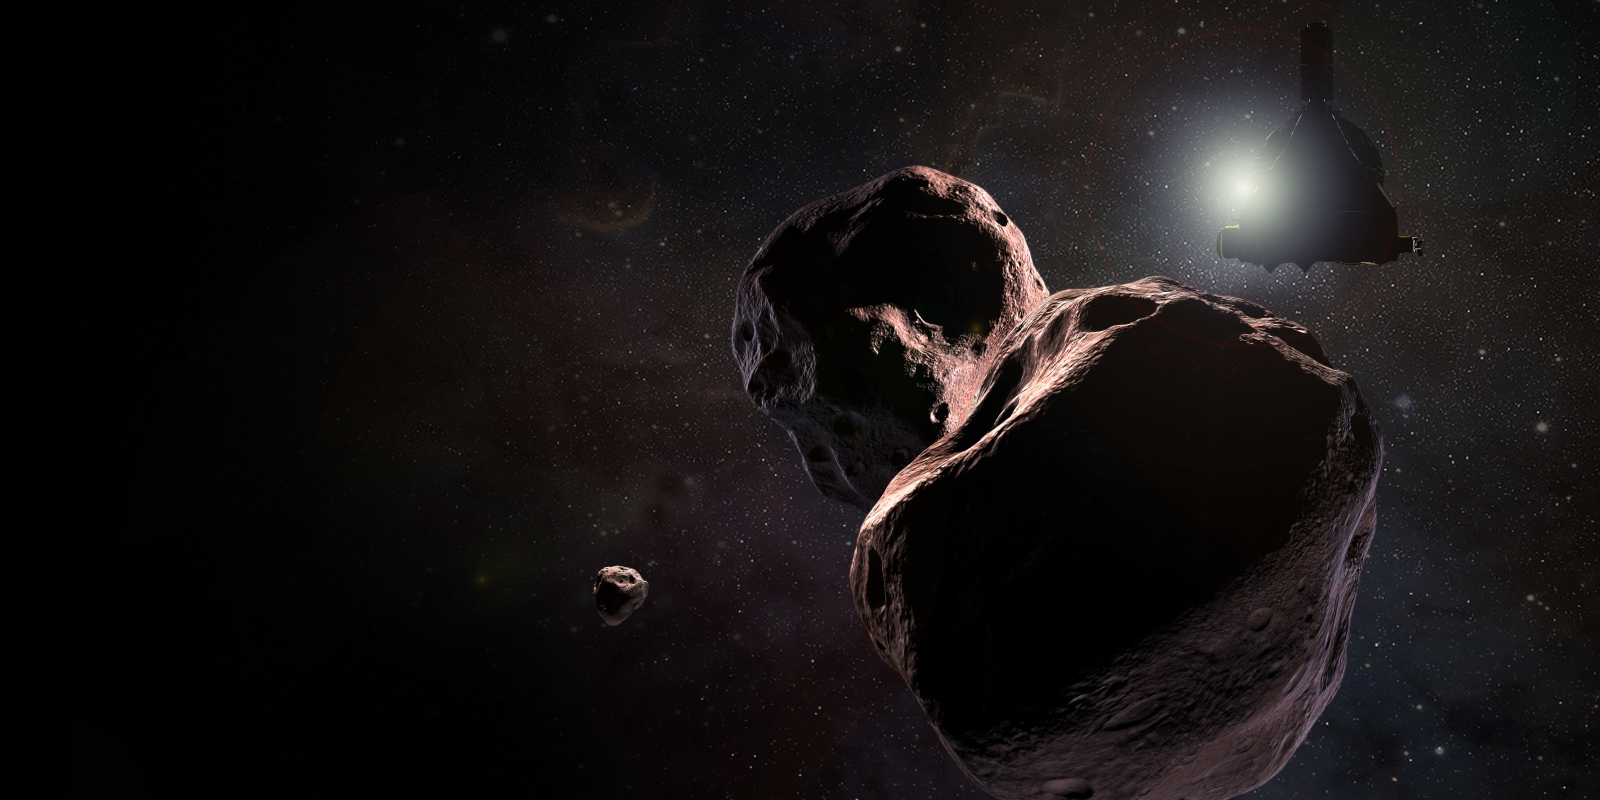 New Horizons / KBO 2014 MU69 encounter